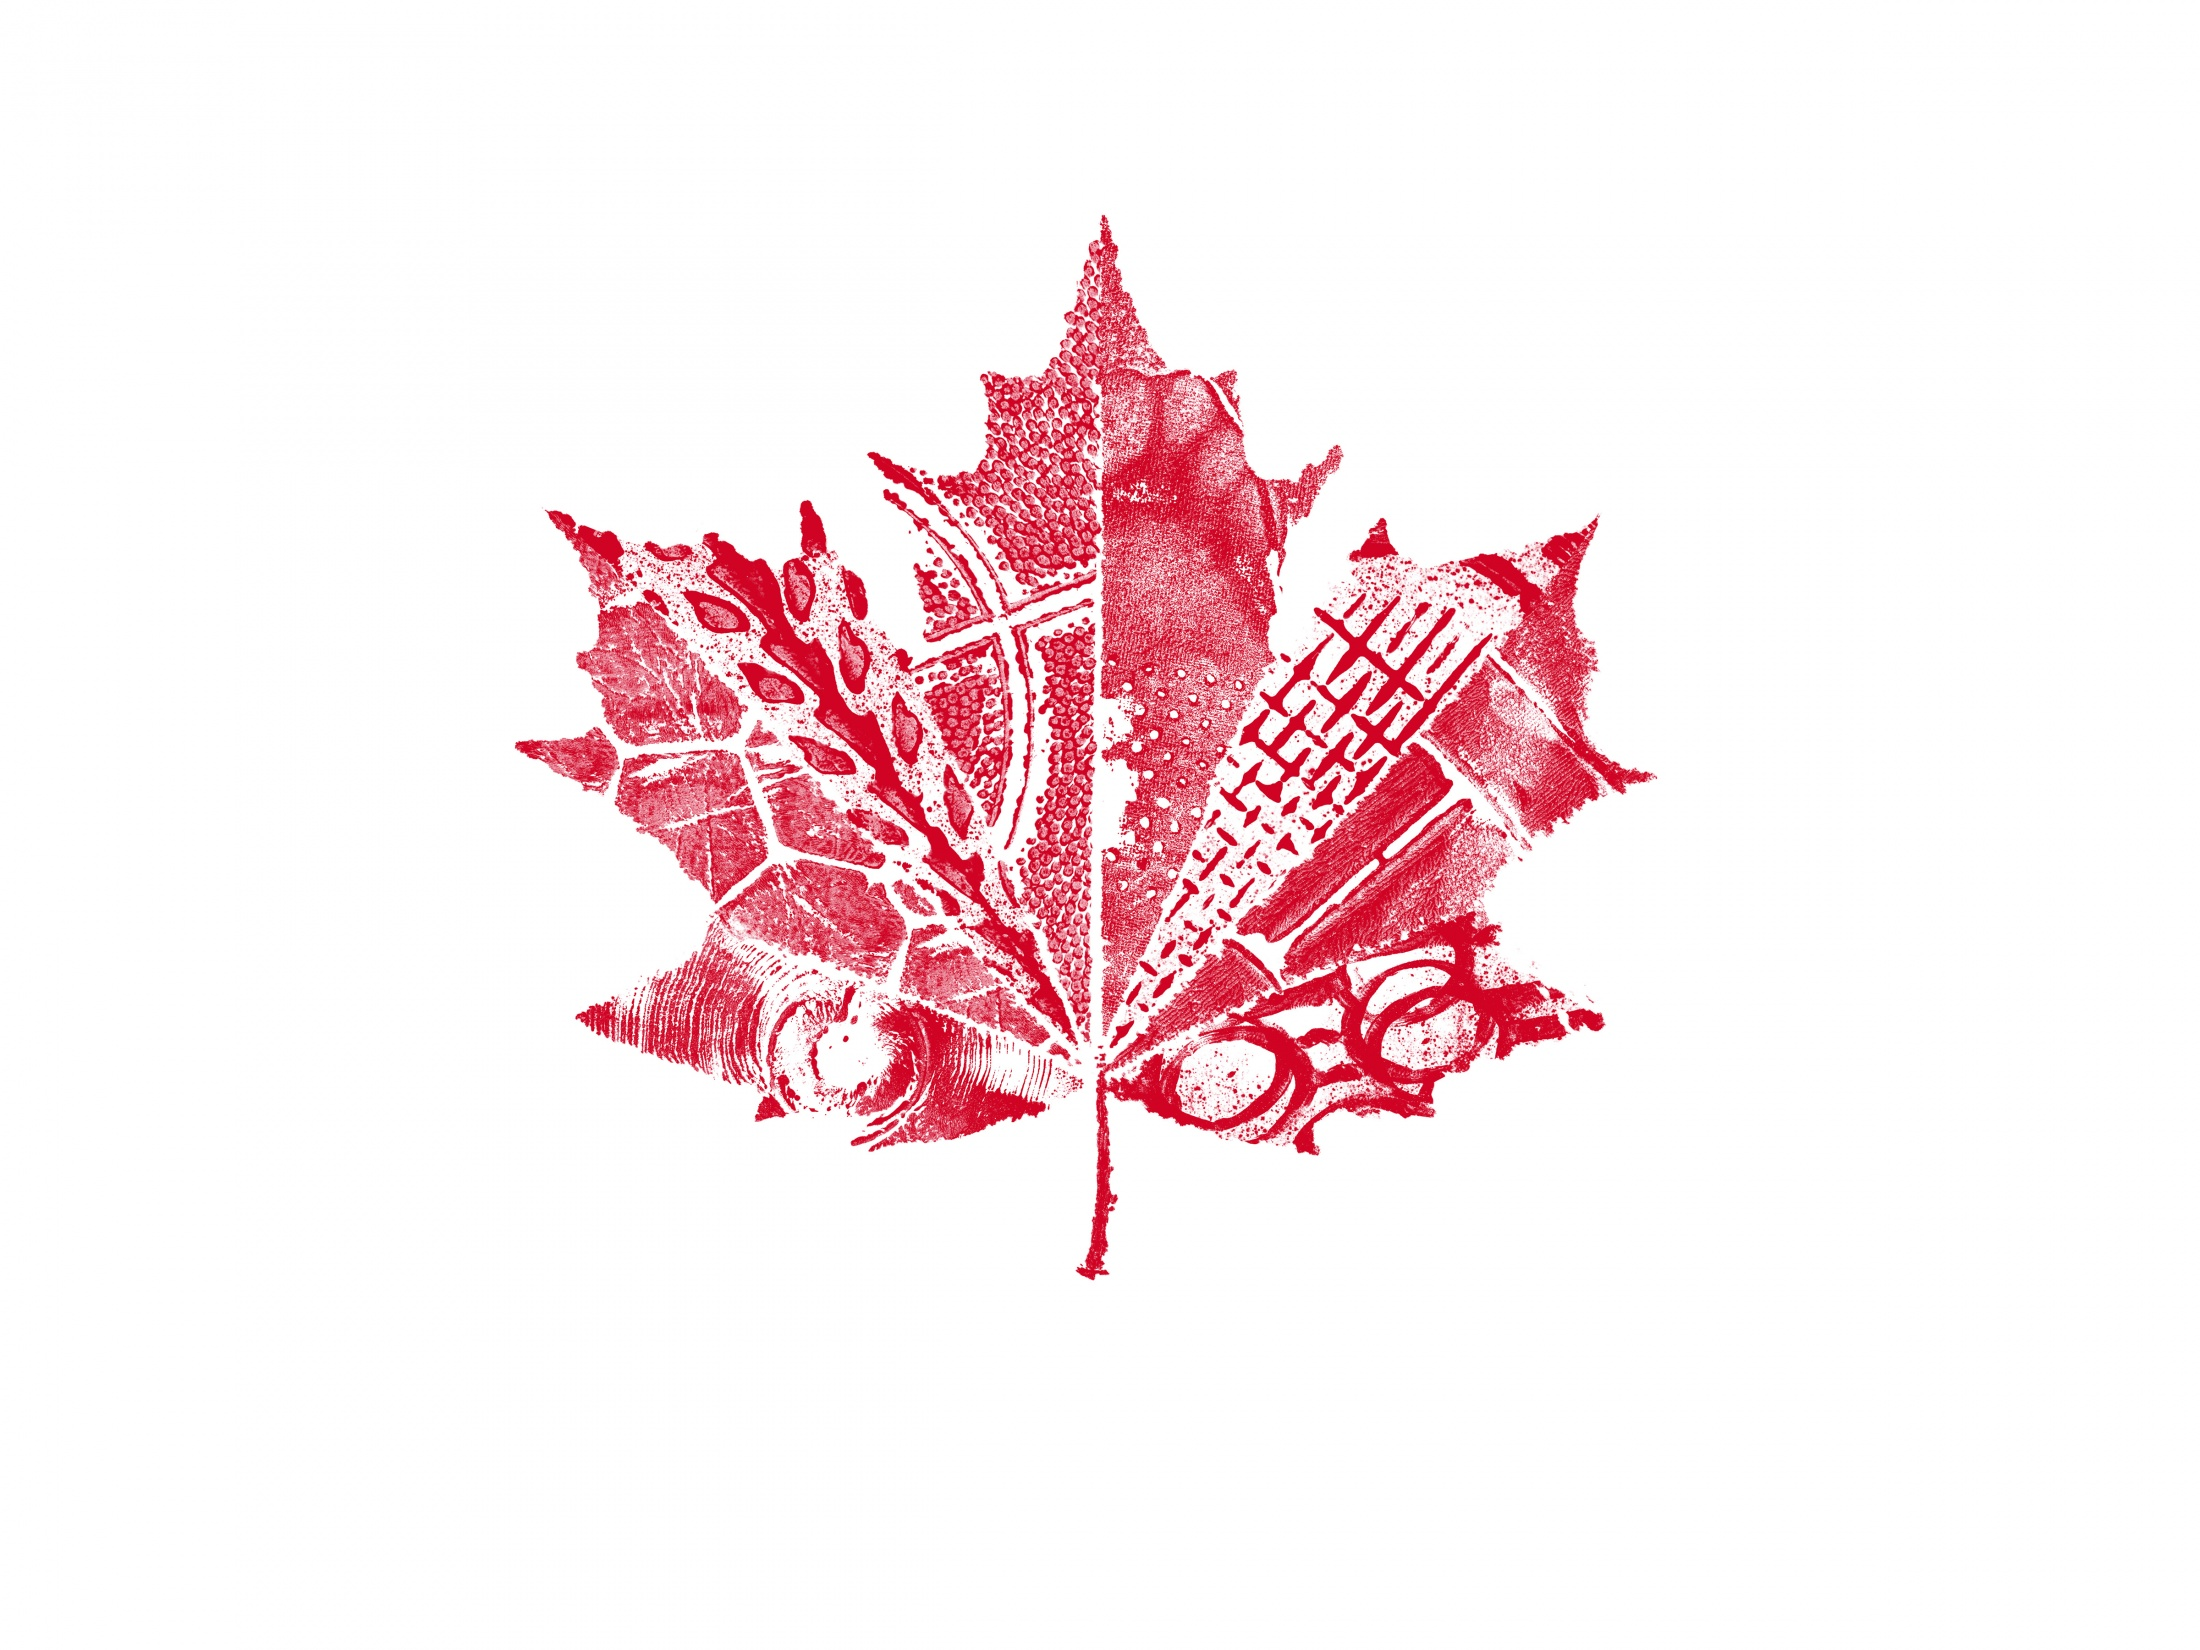 Thumbnail for We All Play For Canada Rio Olympic Campaign